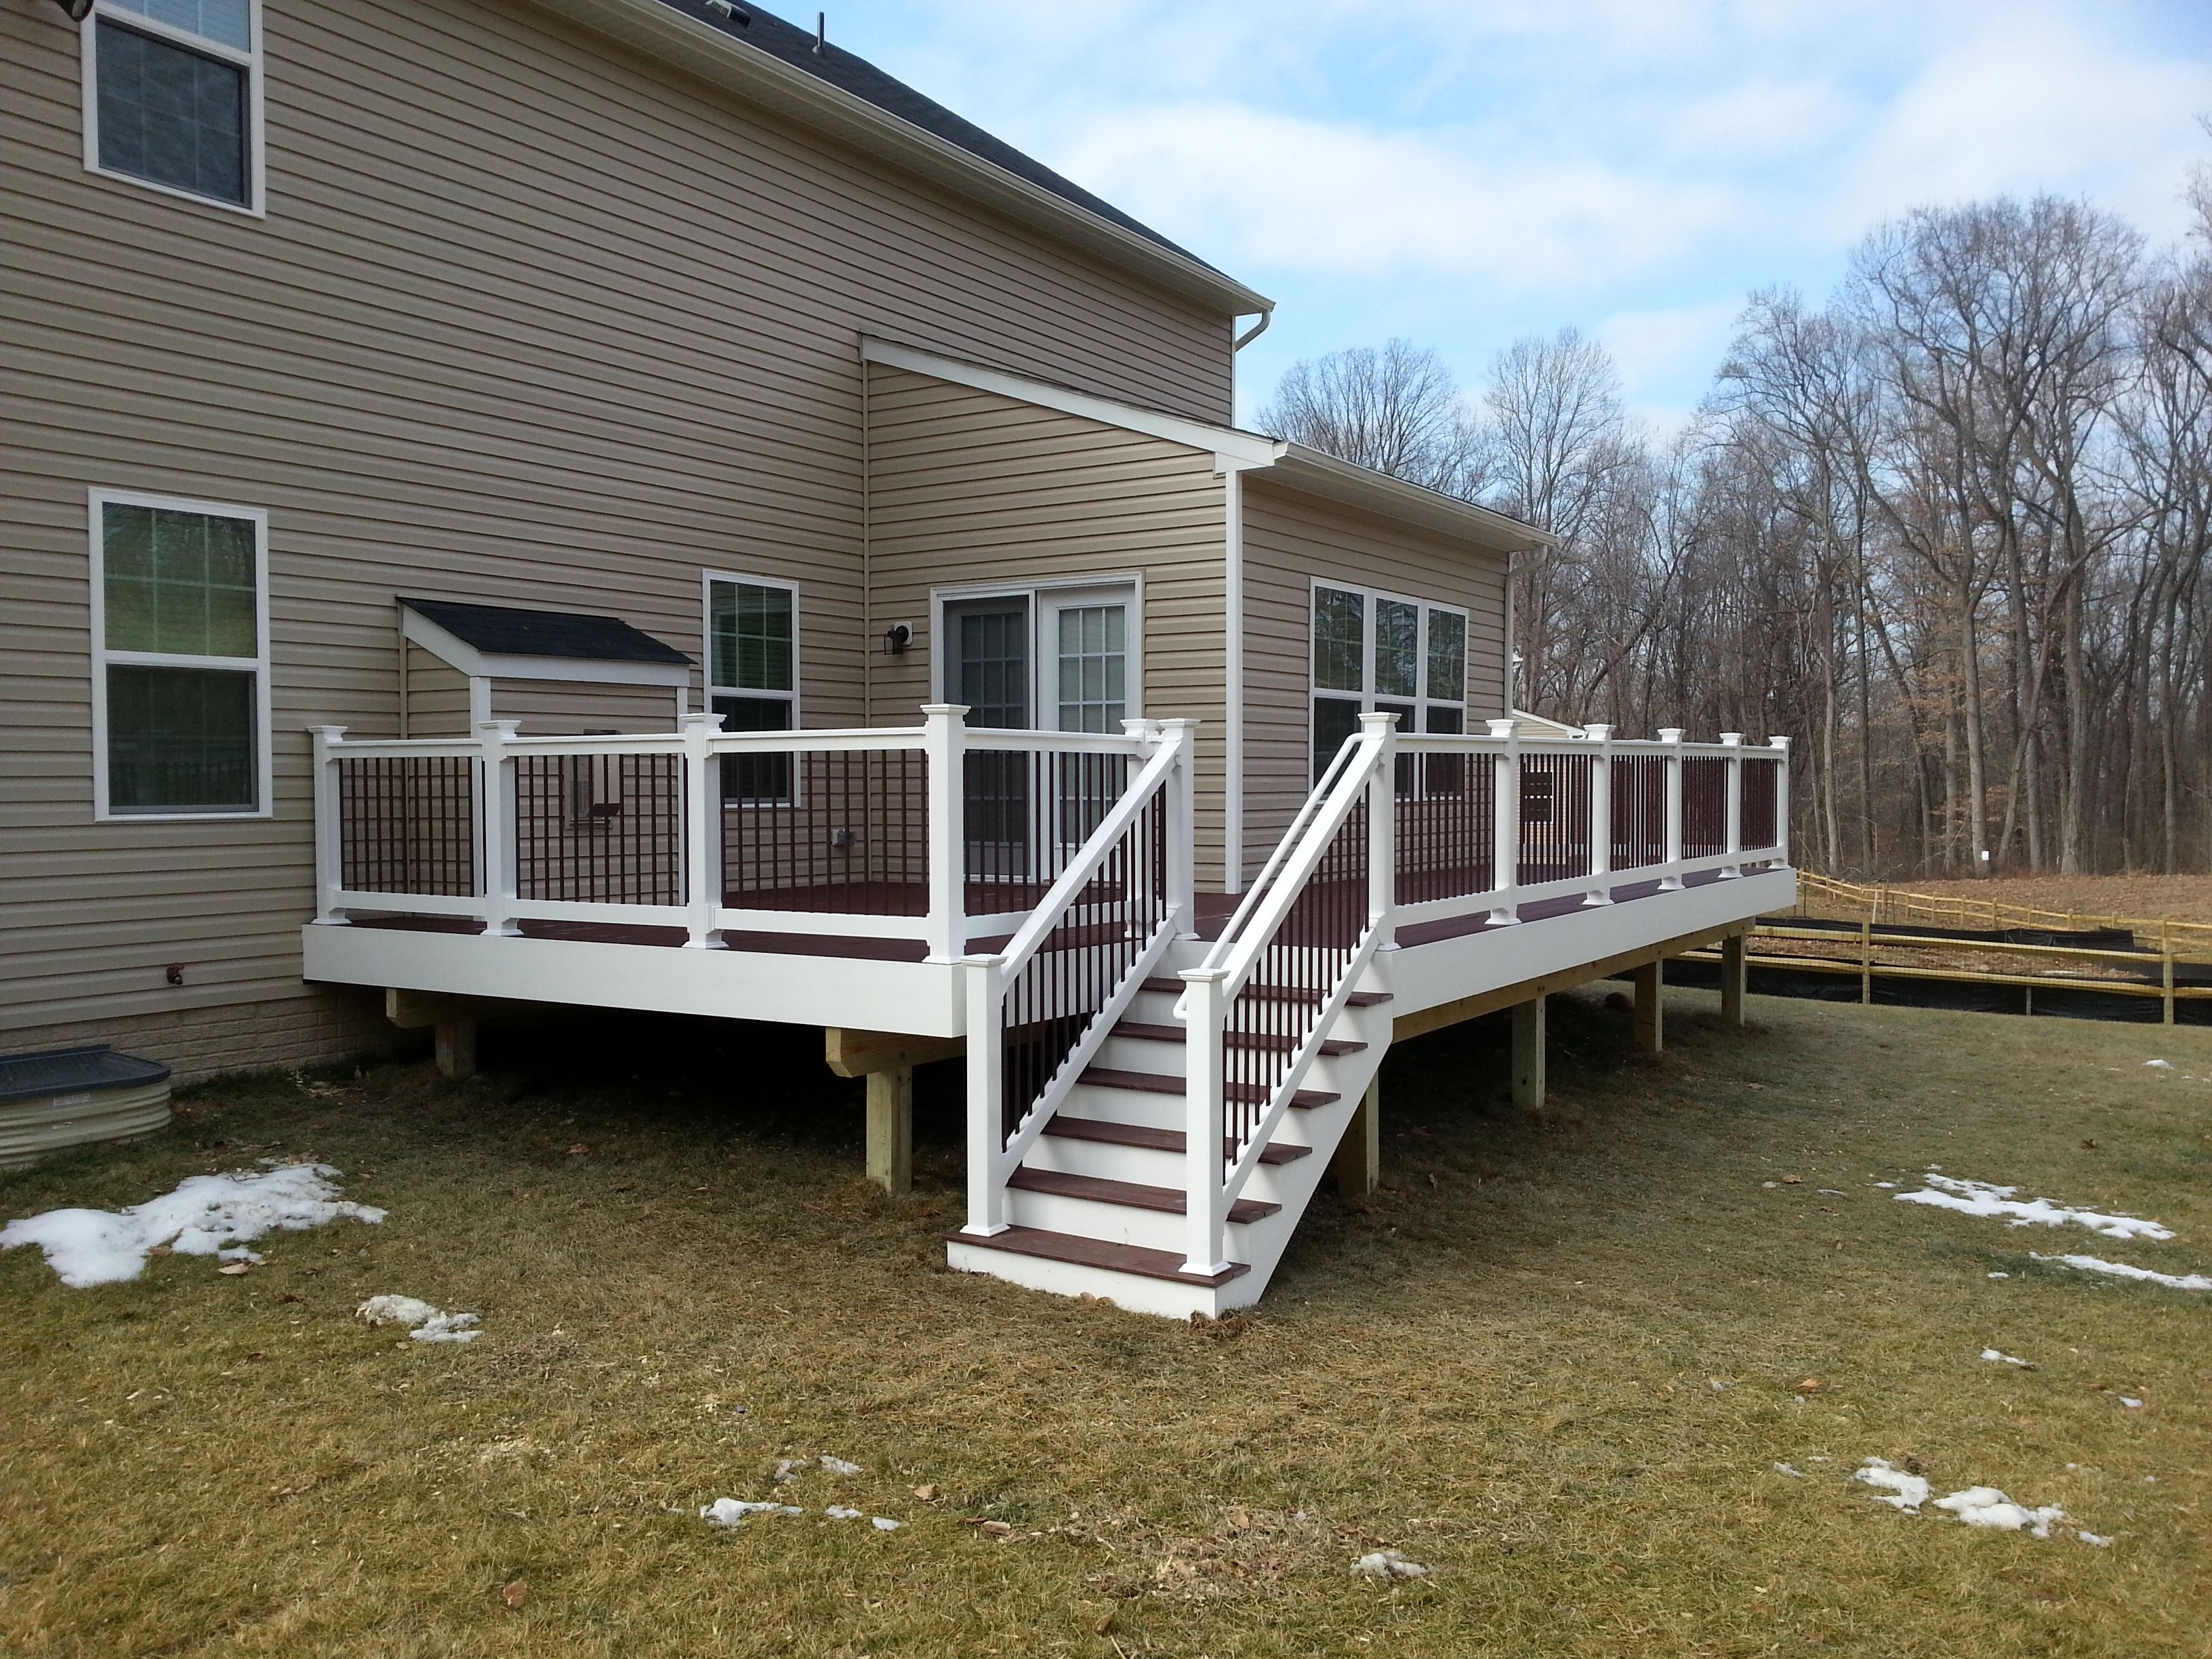 Trex Select Madeira Deck White Vinyl Rail W Rust Color Spindles And White Wrap Trex Select Vinyl Railing Deck